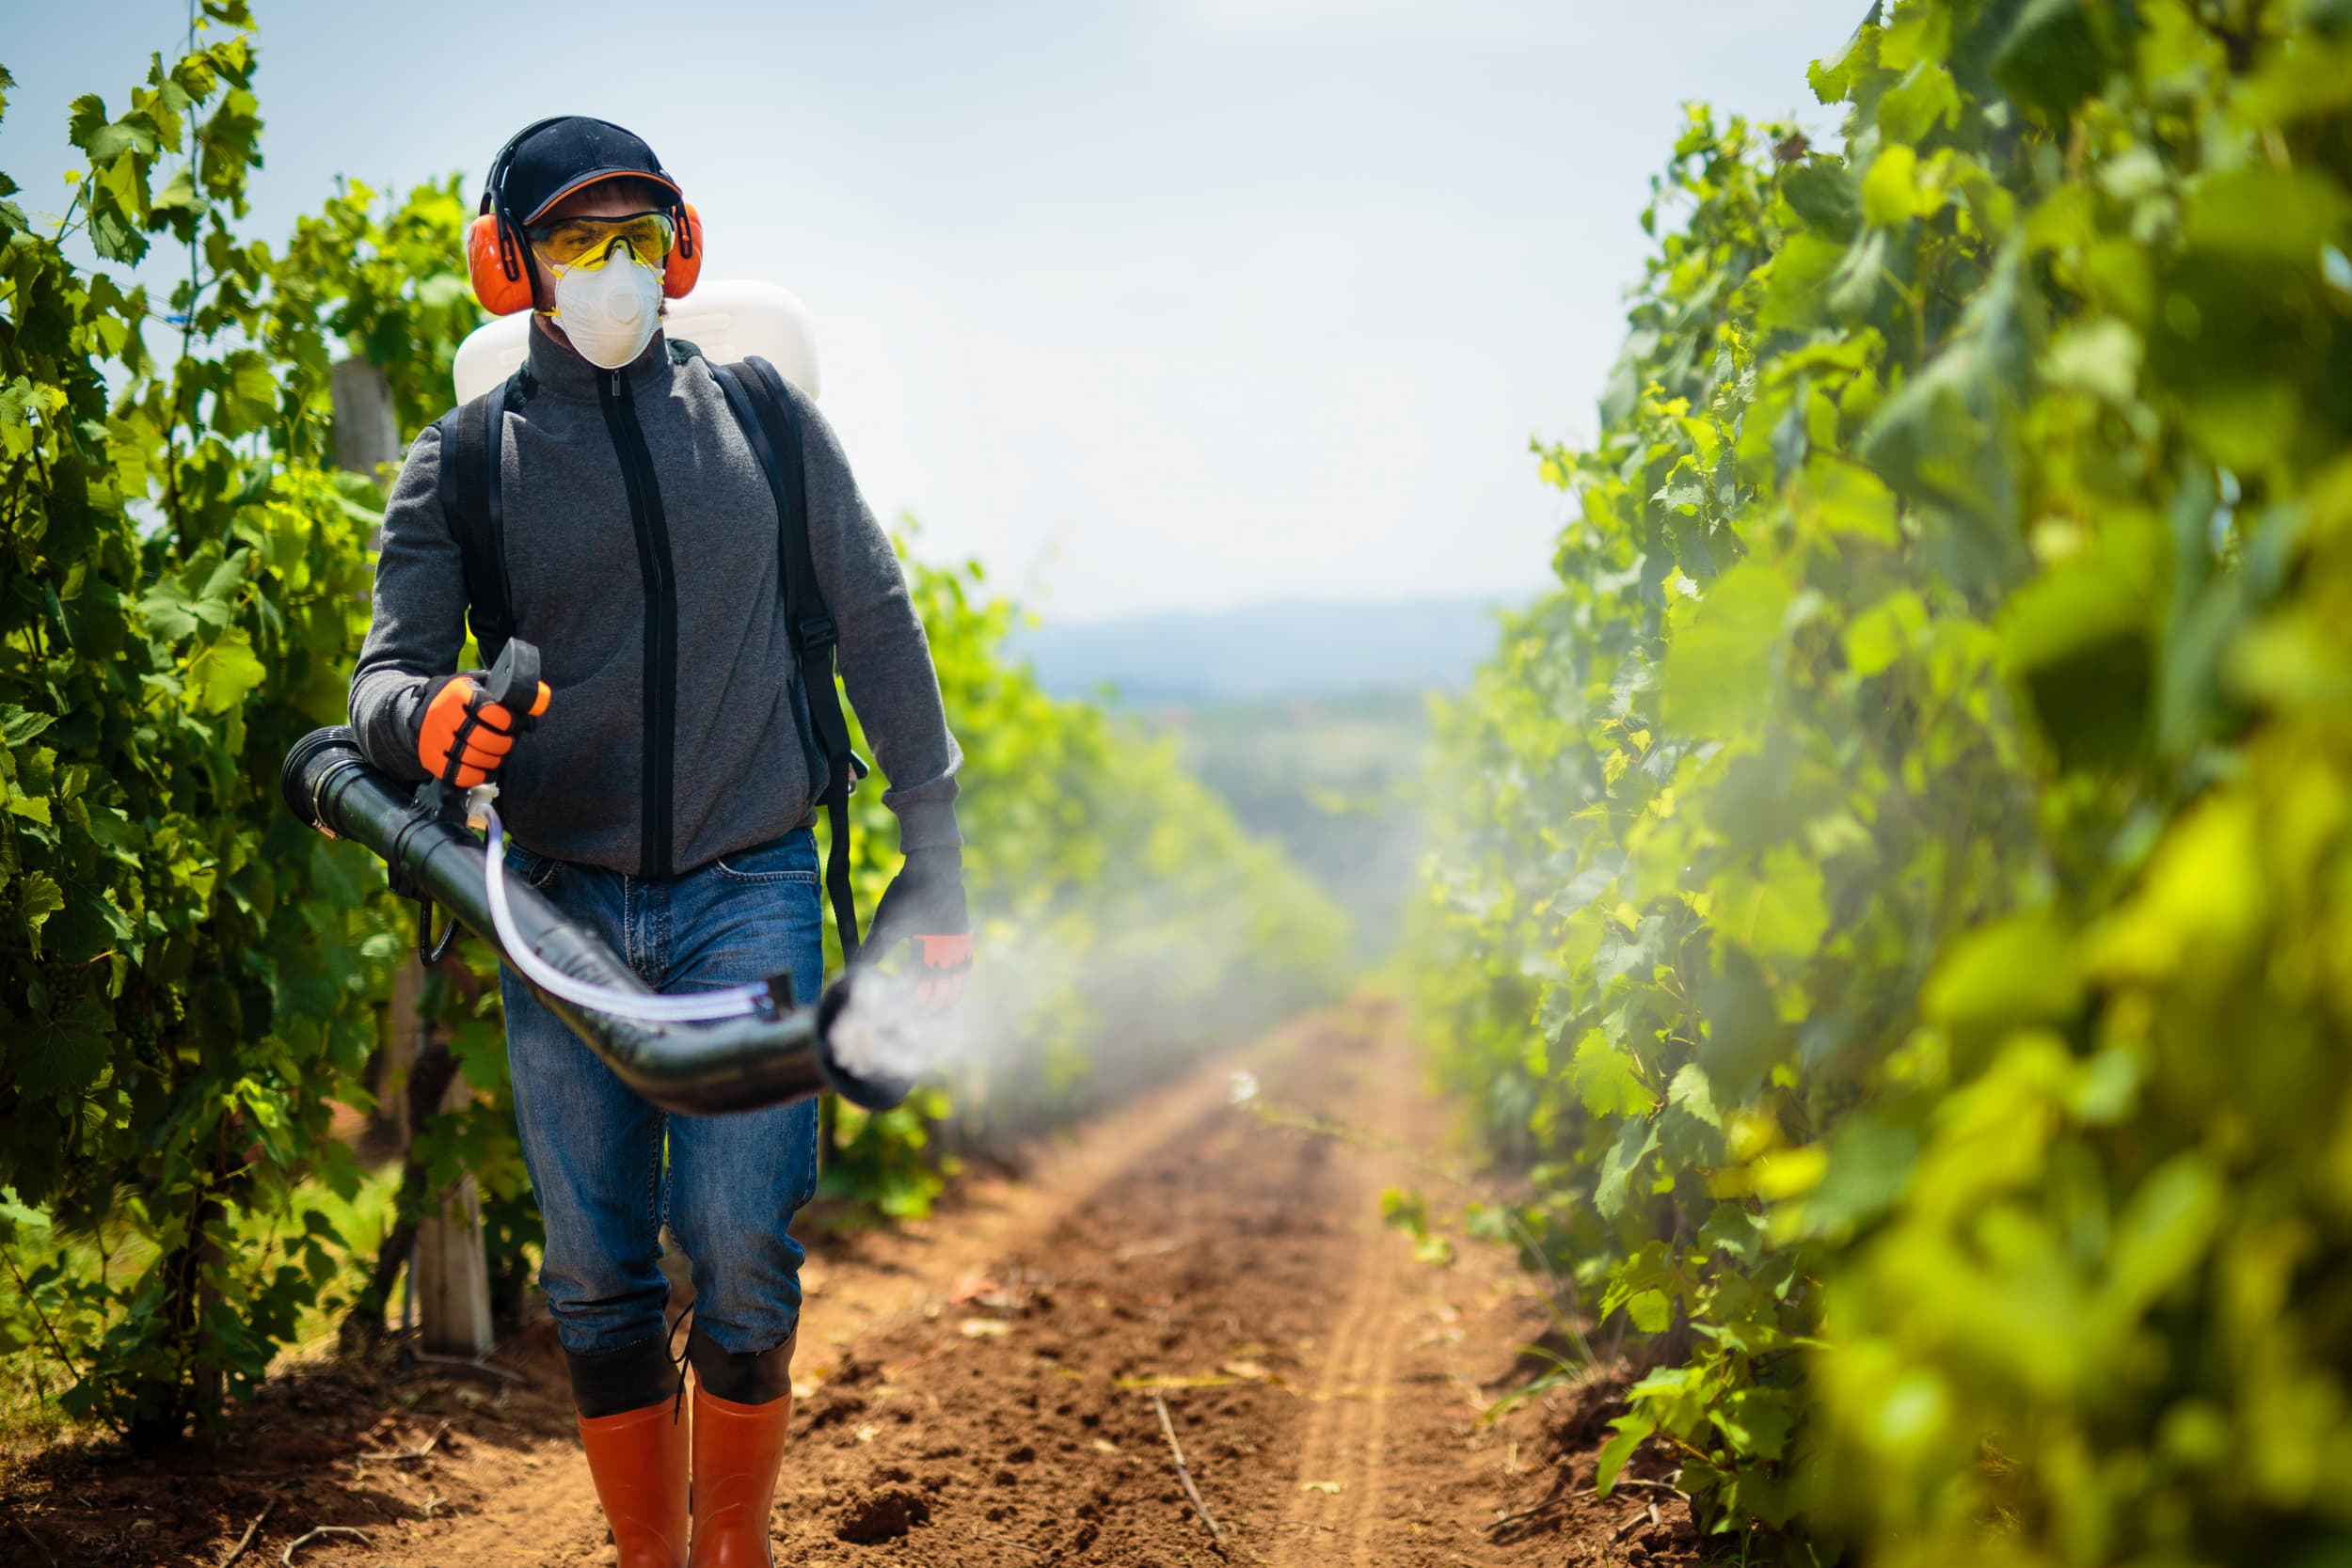 Compliance Training Online Pesticide Worker Safety course